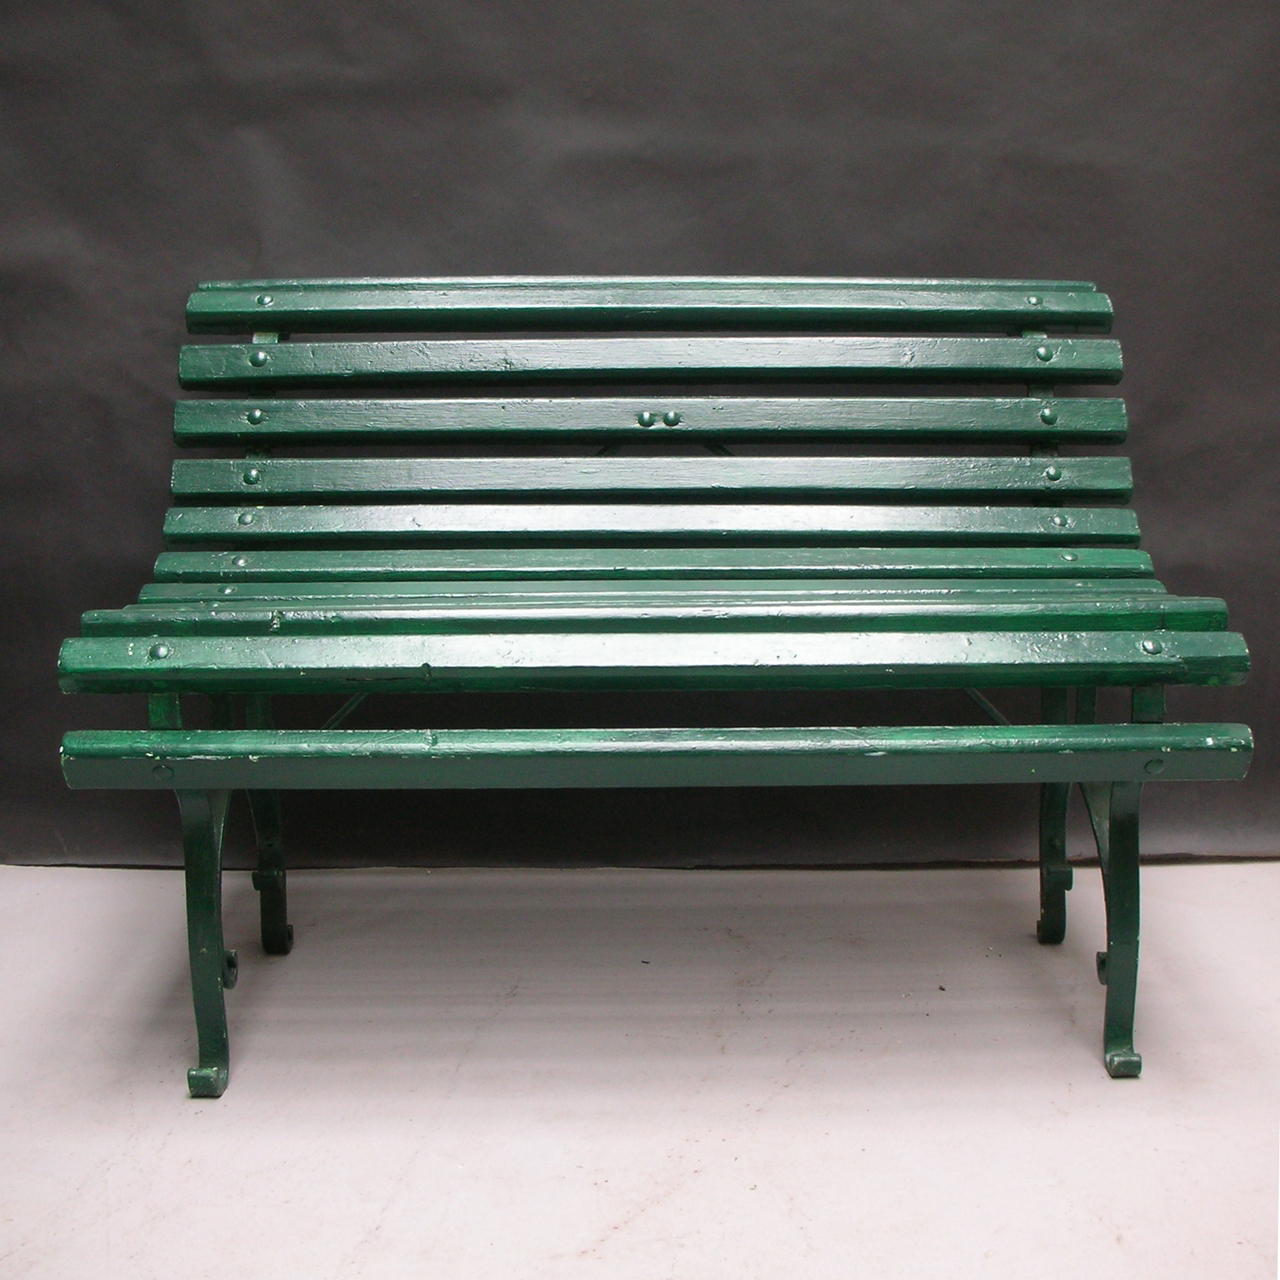 Picture of park bench n° 1